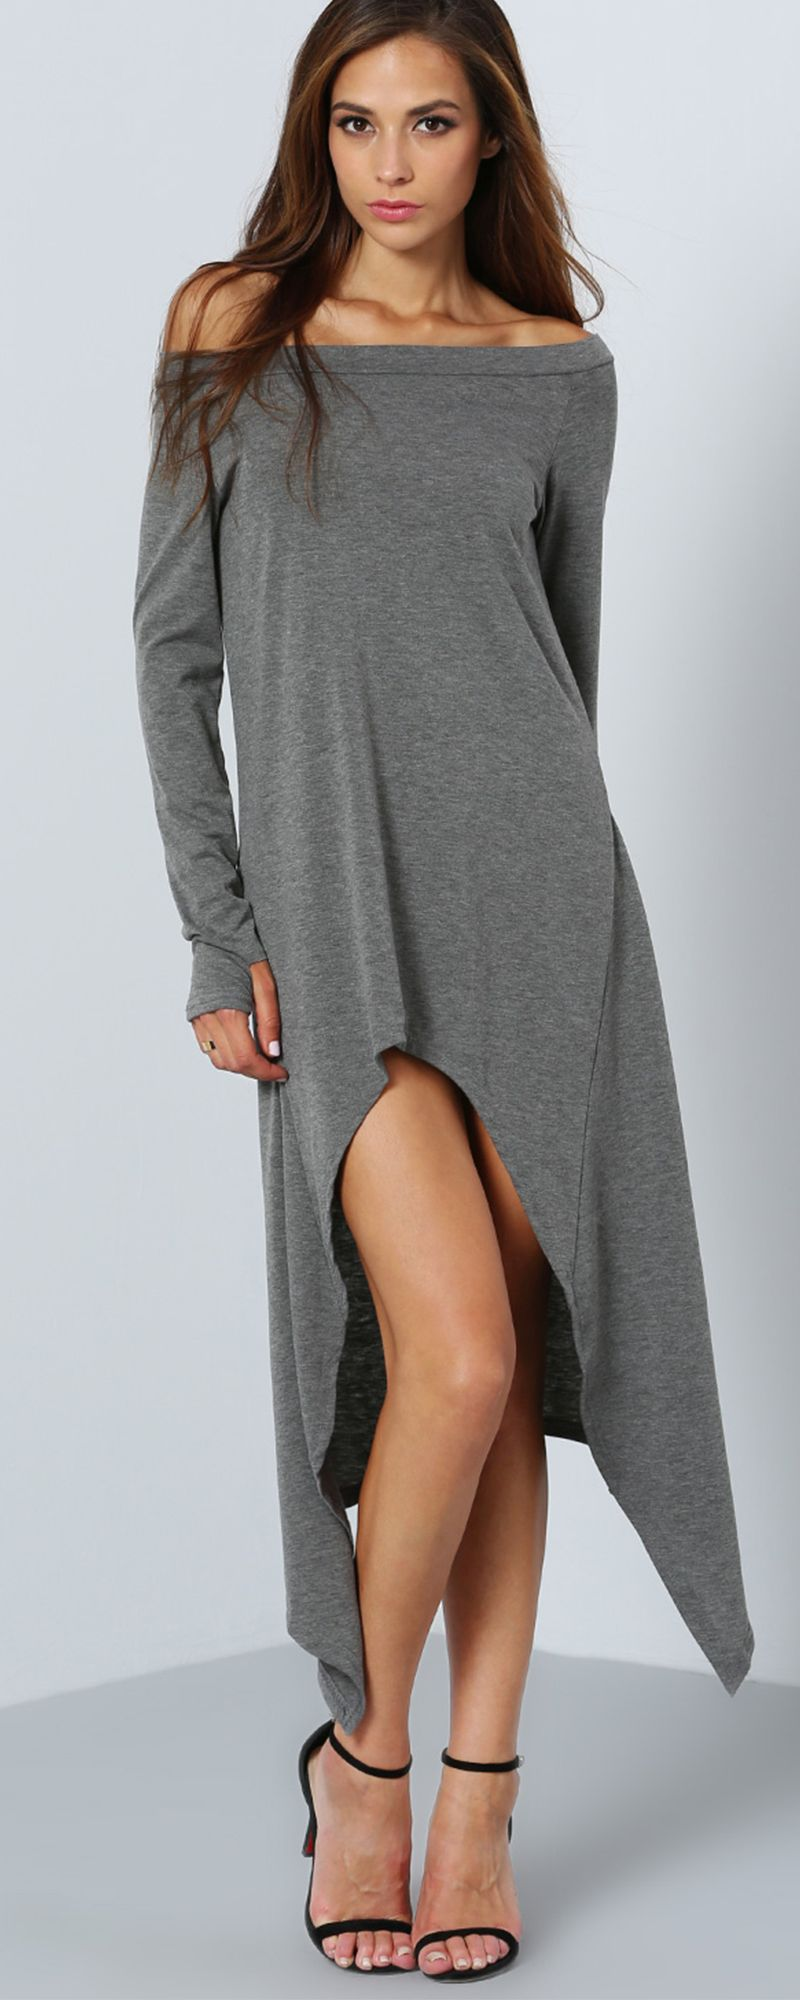 Check it out from shein.com! With dresses like the Grey ...